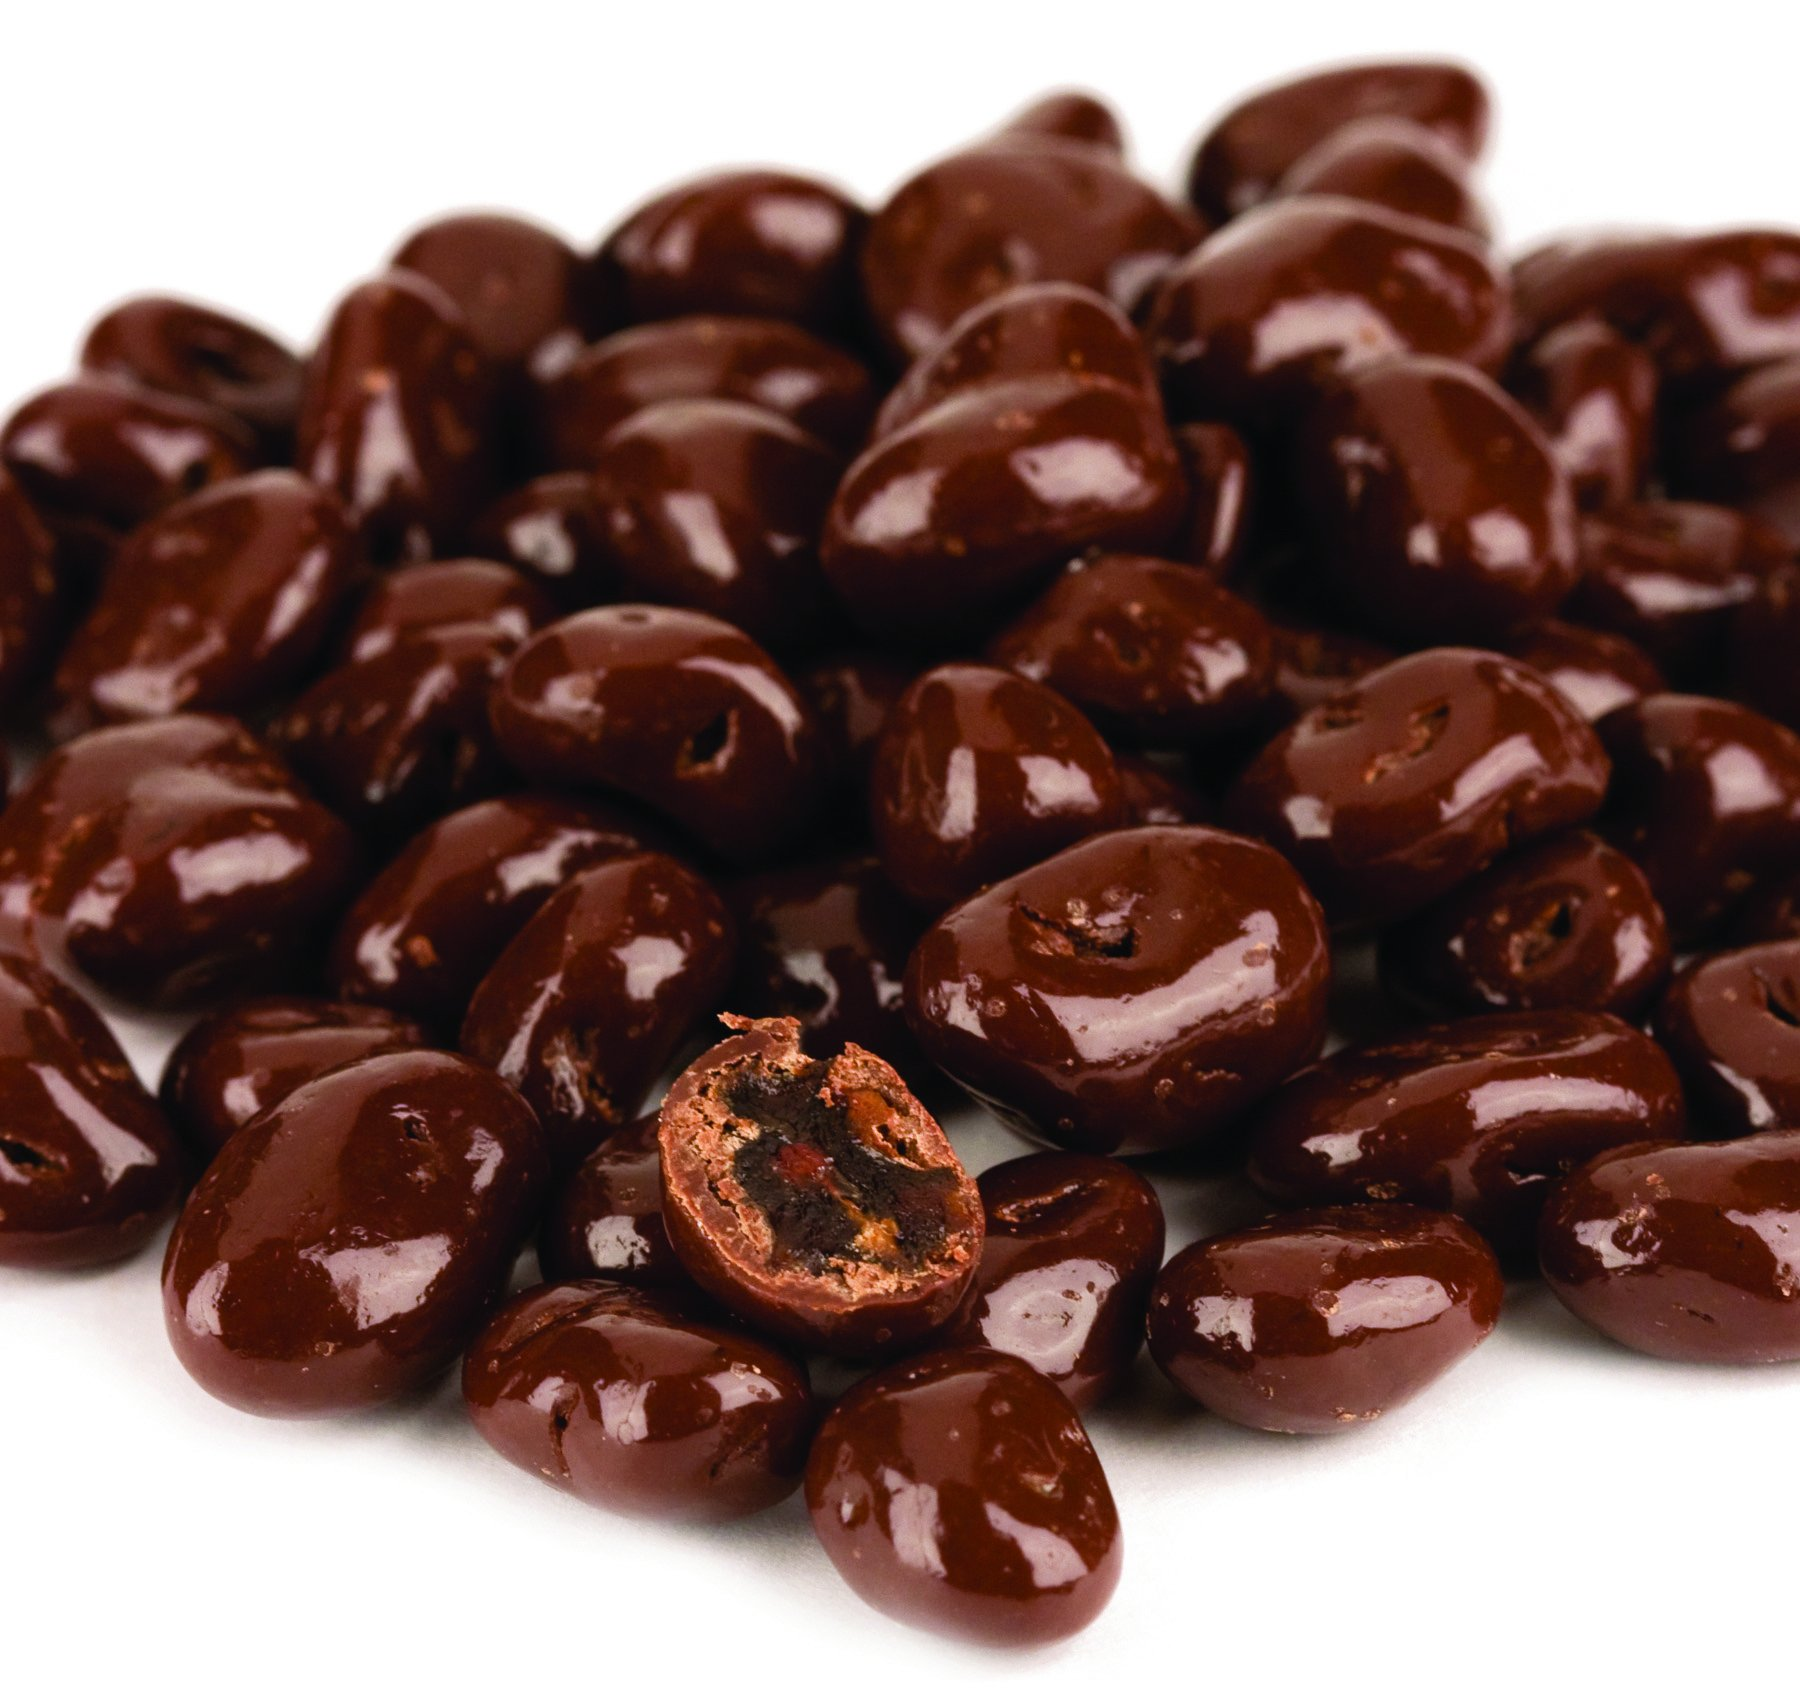 Dark Chocolate Covered Raisins, No Sugar Added, 12 Oz. Bag by Kauffman's Fruit Farm